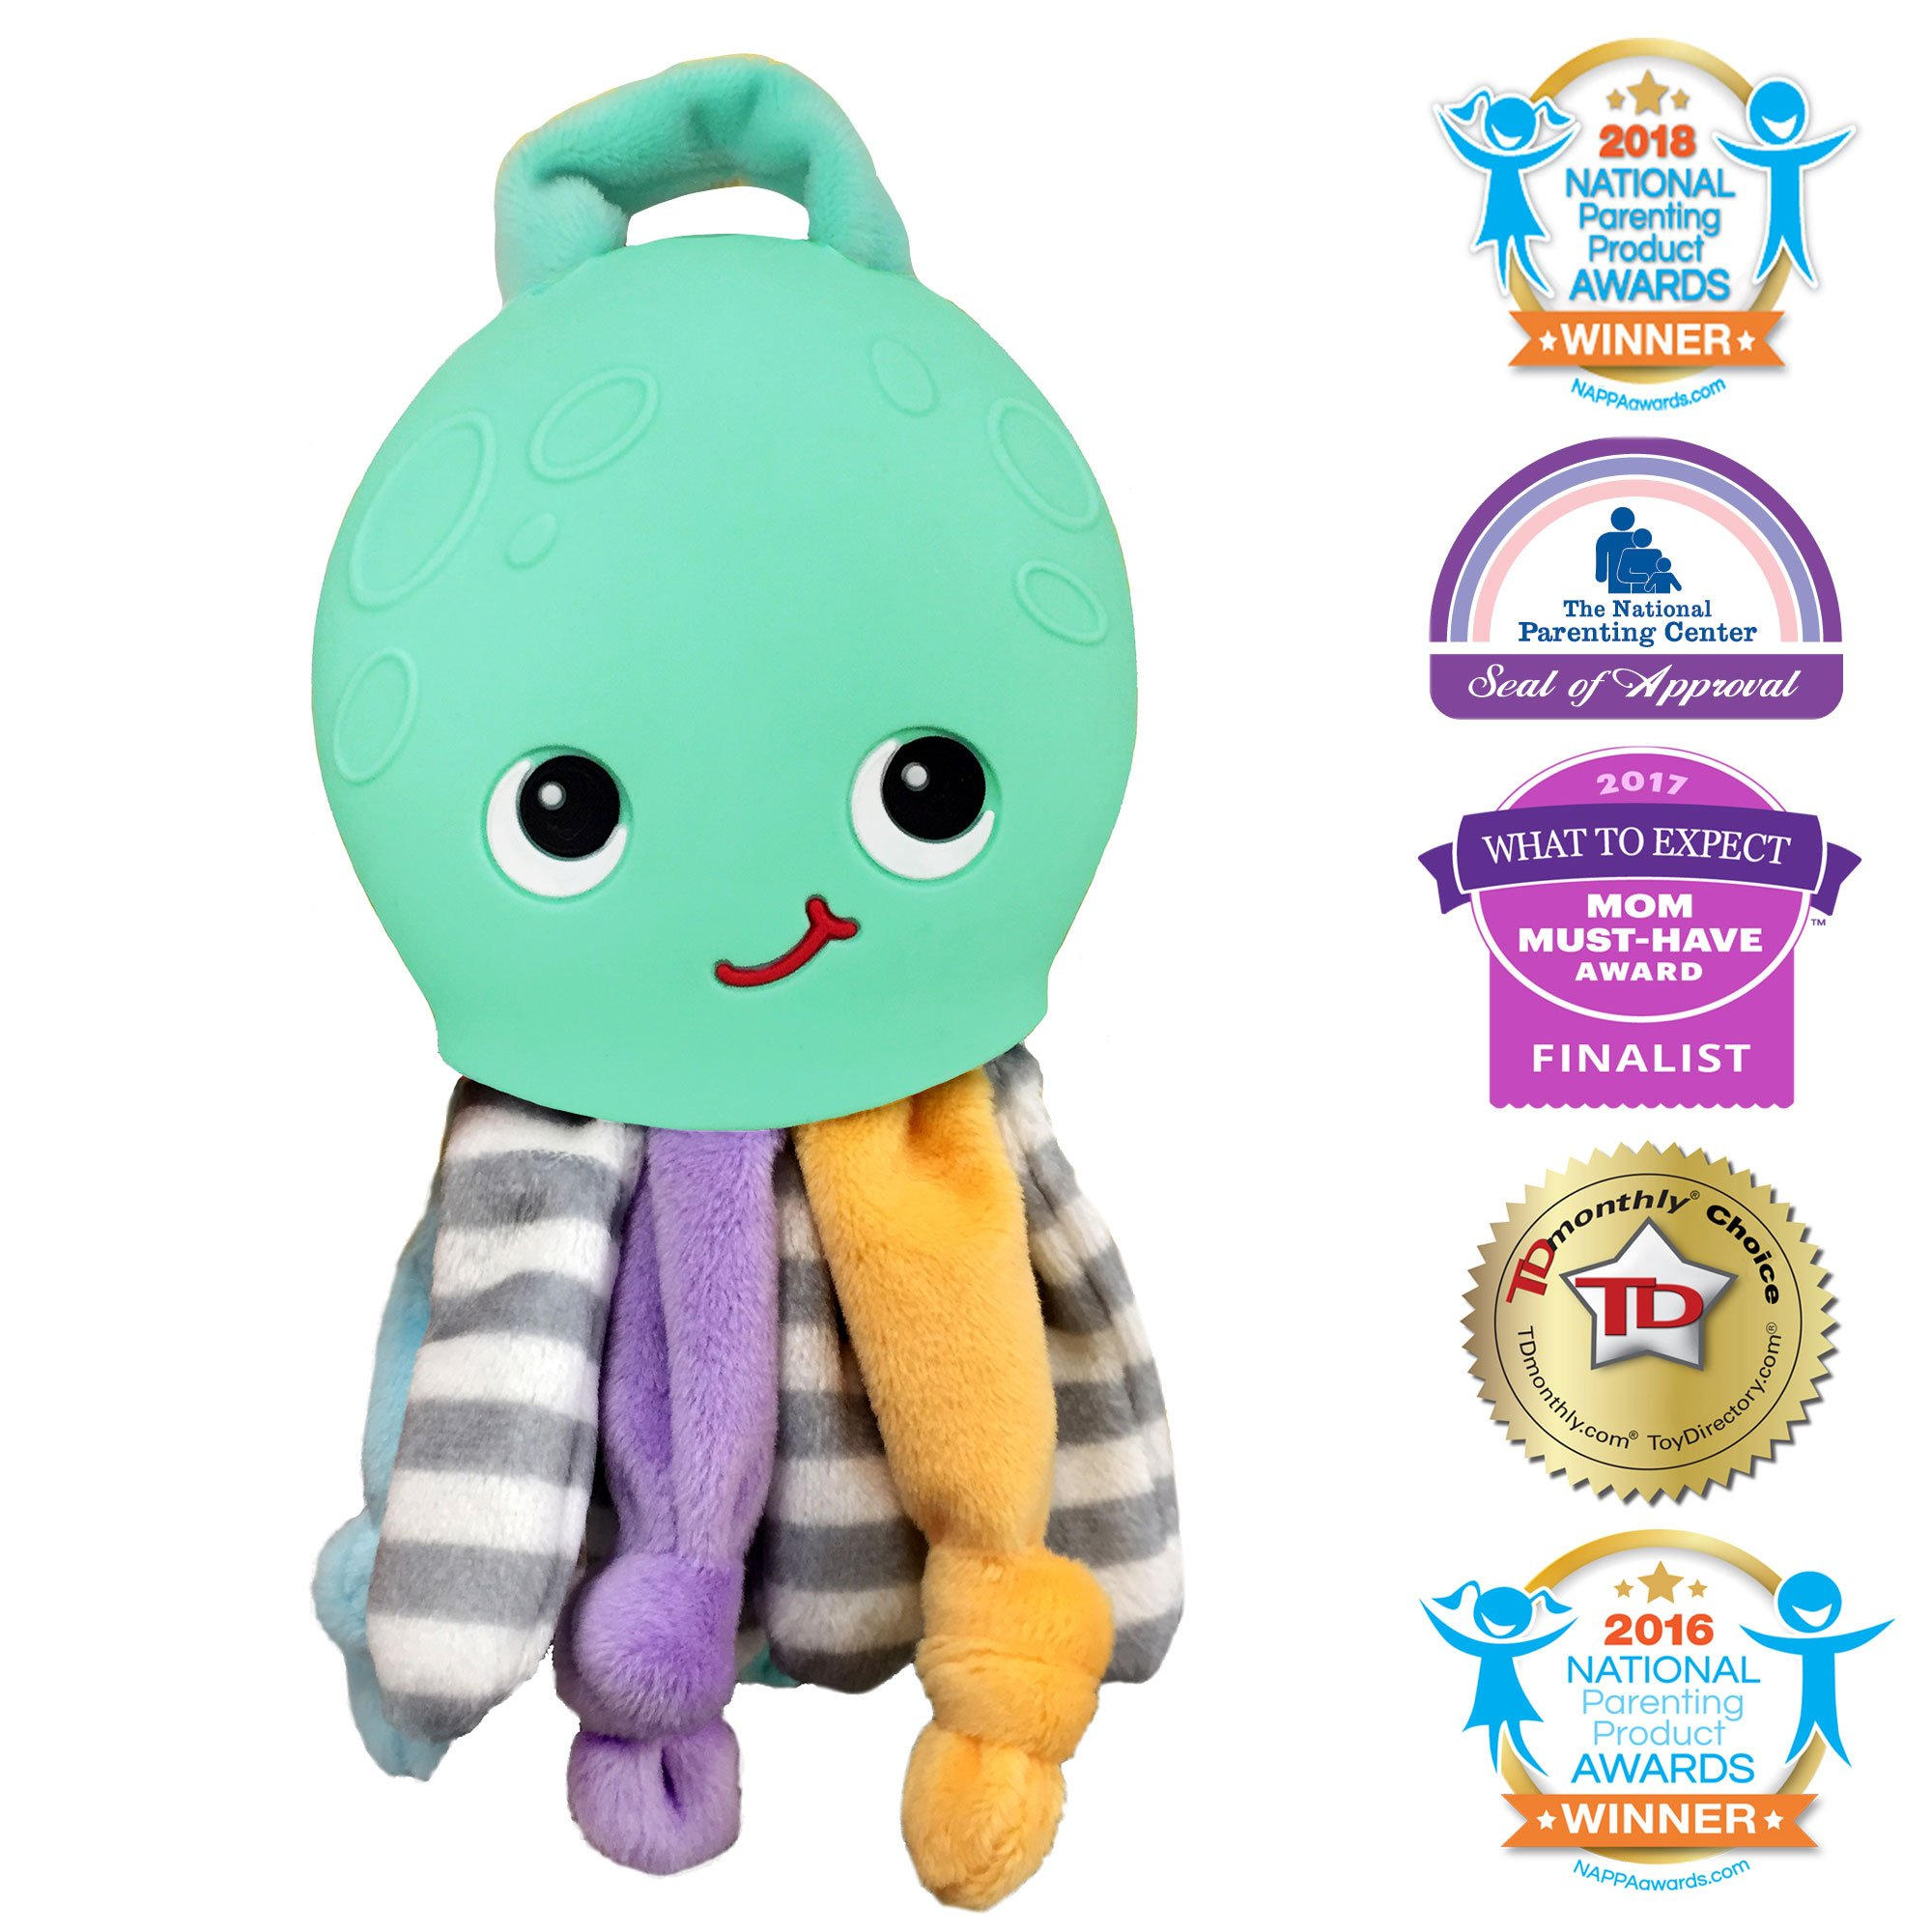 Silli Chews 2 in 1 Octopus Security Buddy Soft Plush Baby Toy and Silicone Soft Teething Pain Relief Teether for Babies Infants and Toddlers PVC, Phthalate, Lead, and BPA Free Chew Toy Mint Green